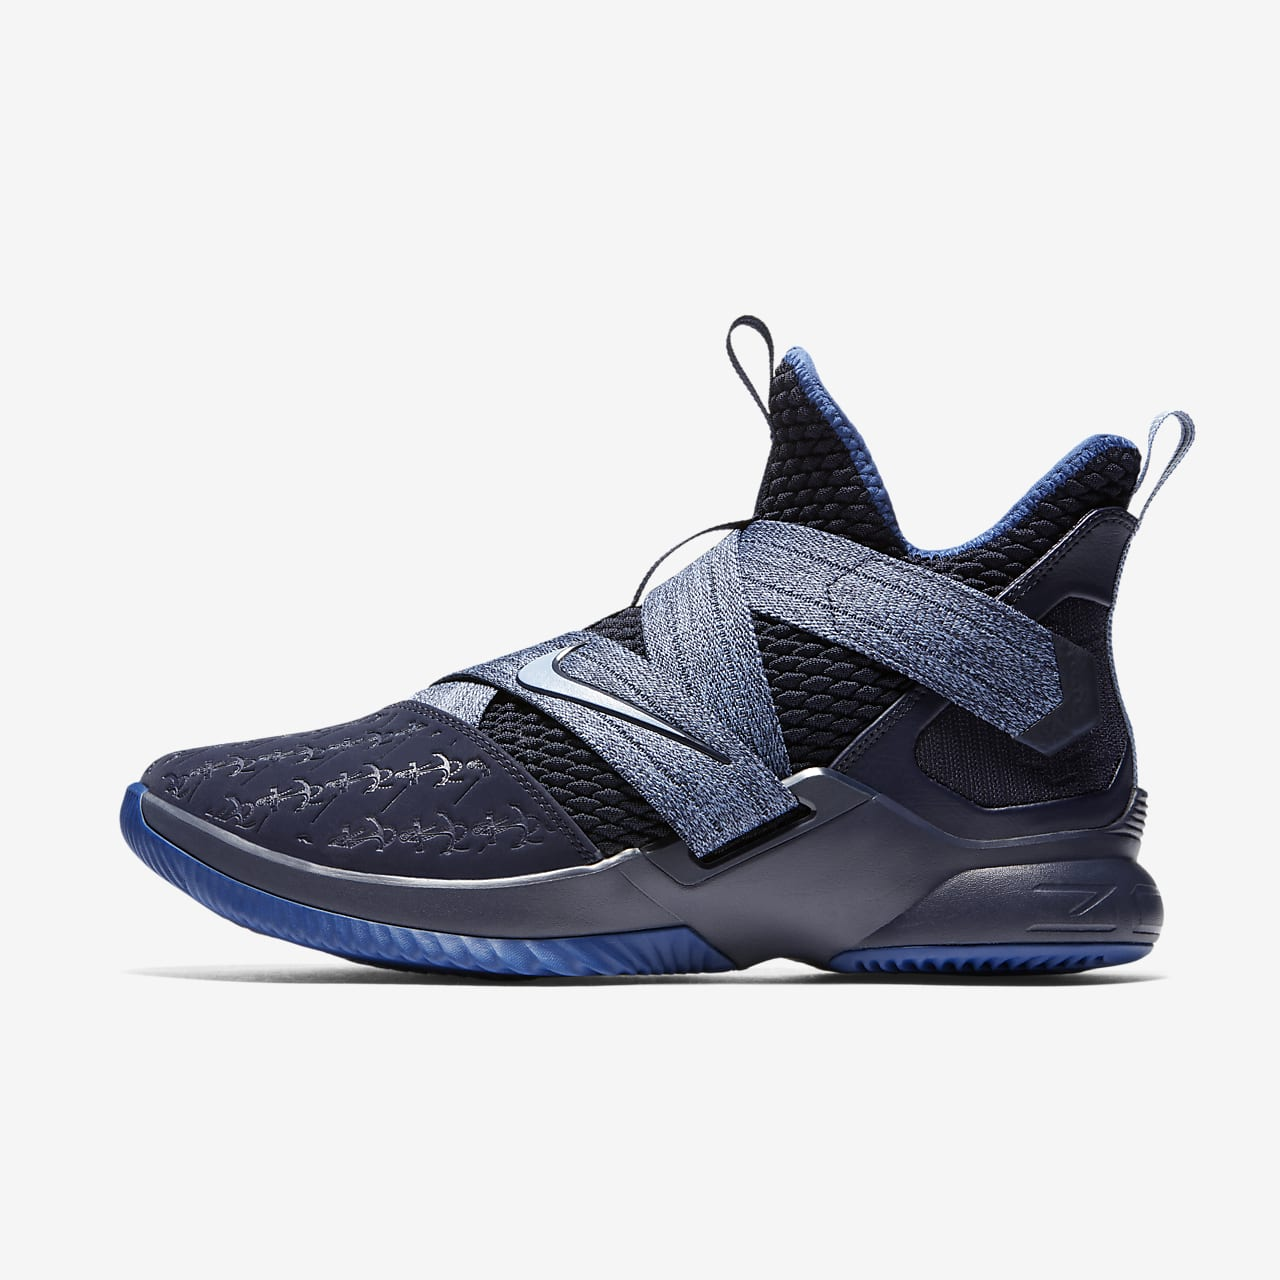 LeBron Soldier 12 Basketball Shoe